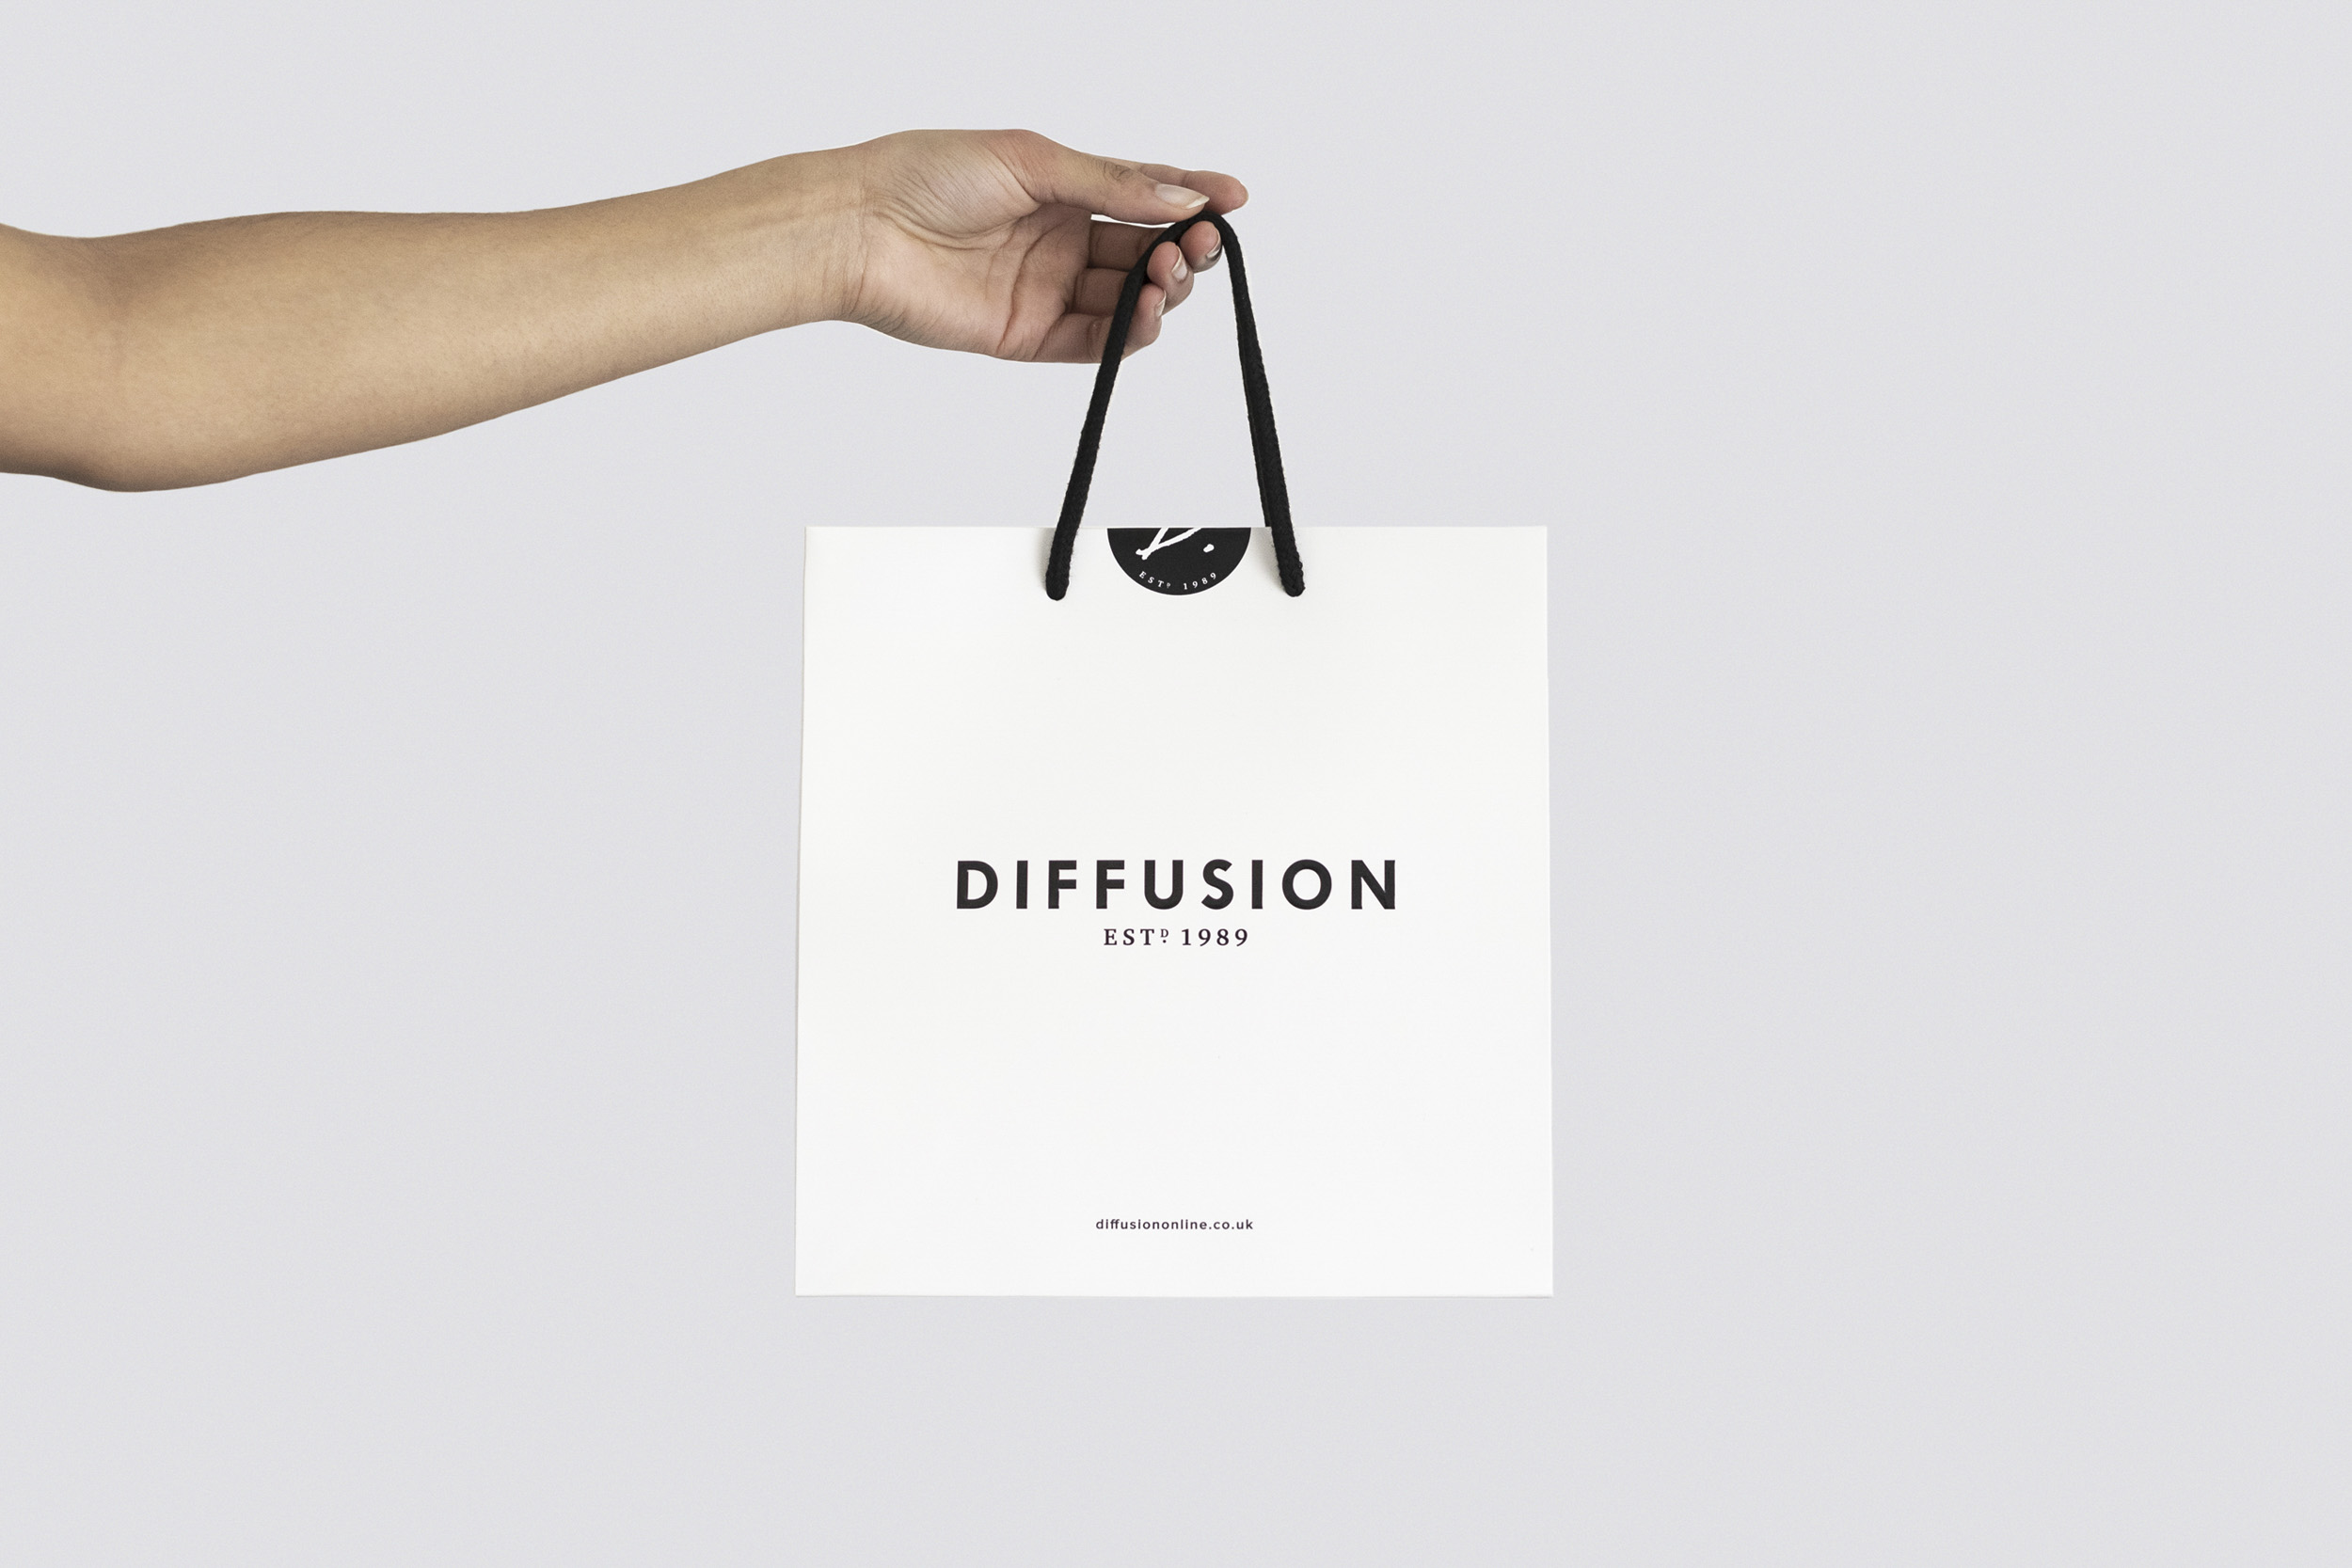 Diffusion by Wah Wah Lab - Packaging Design.jpg